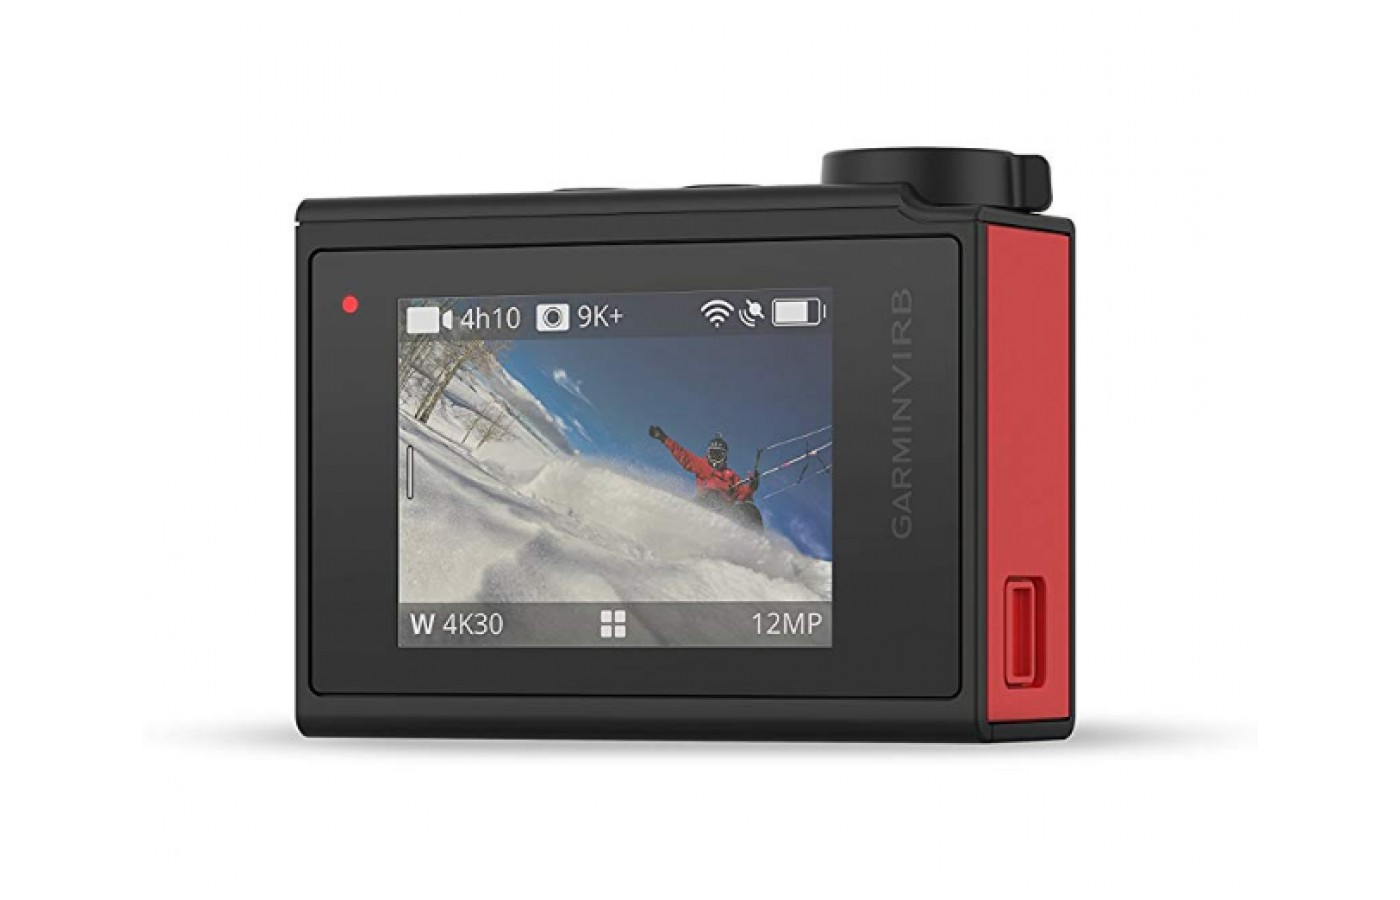 This camera takes high quality video and images in HD.